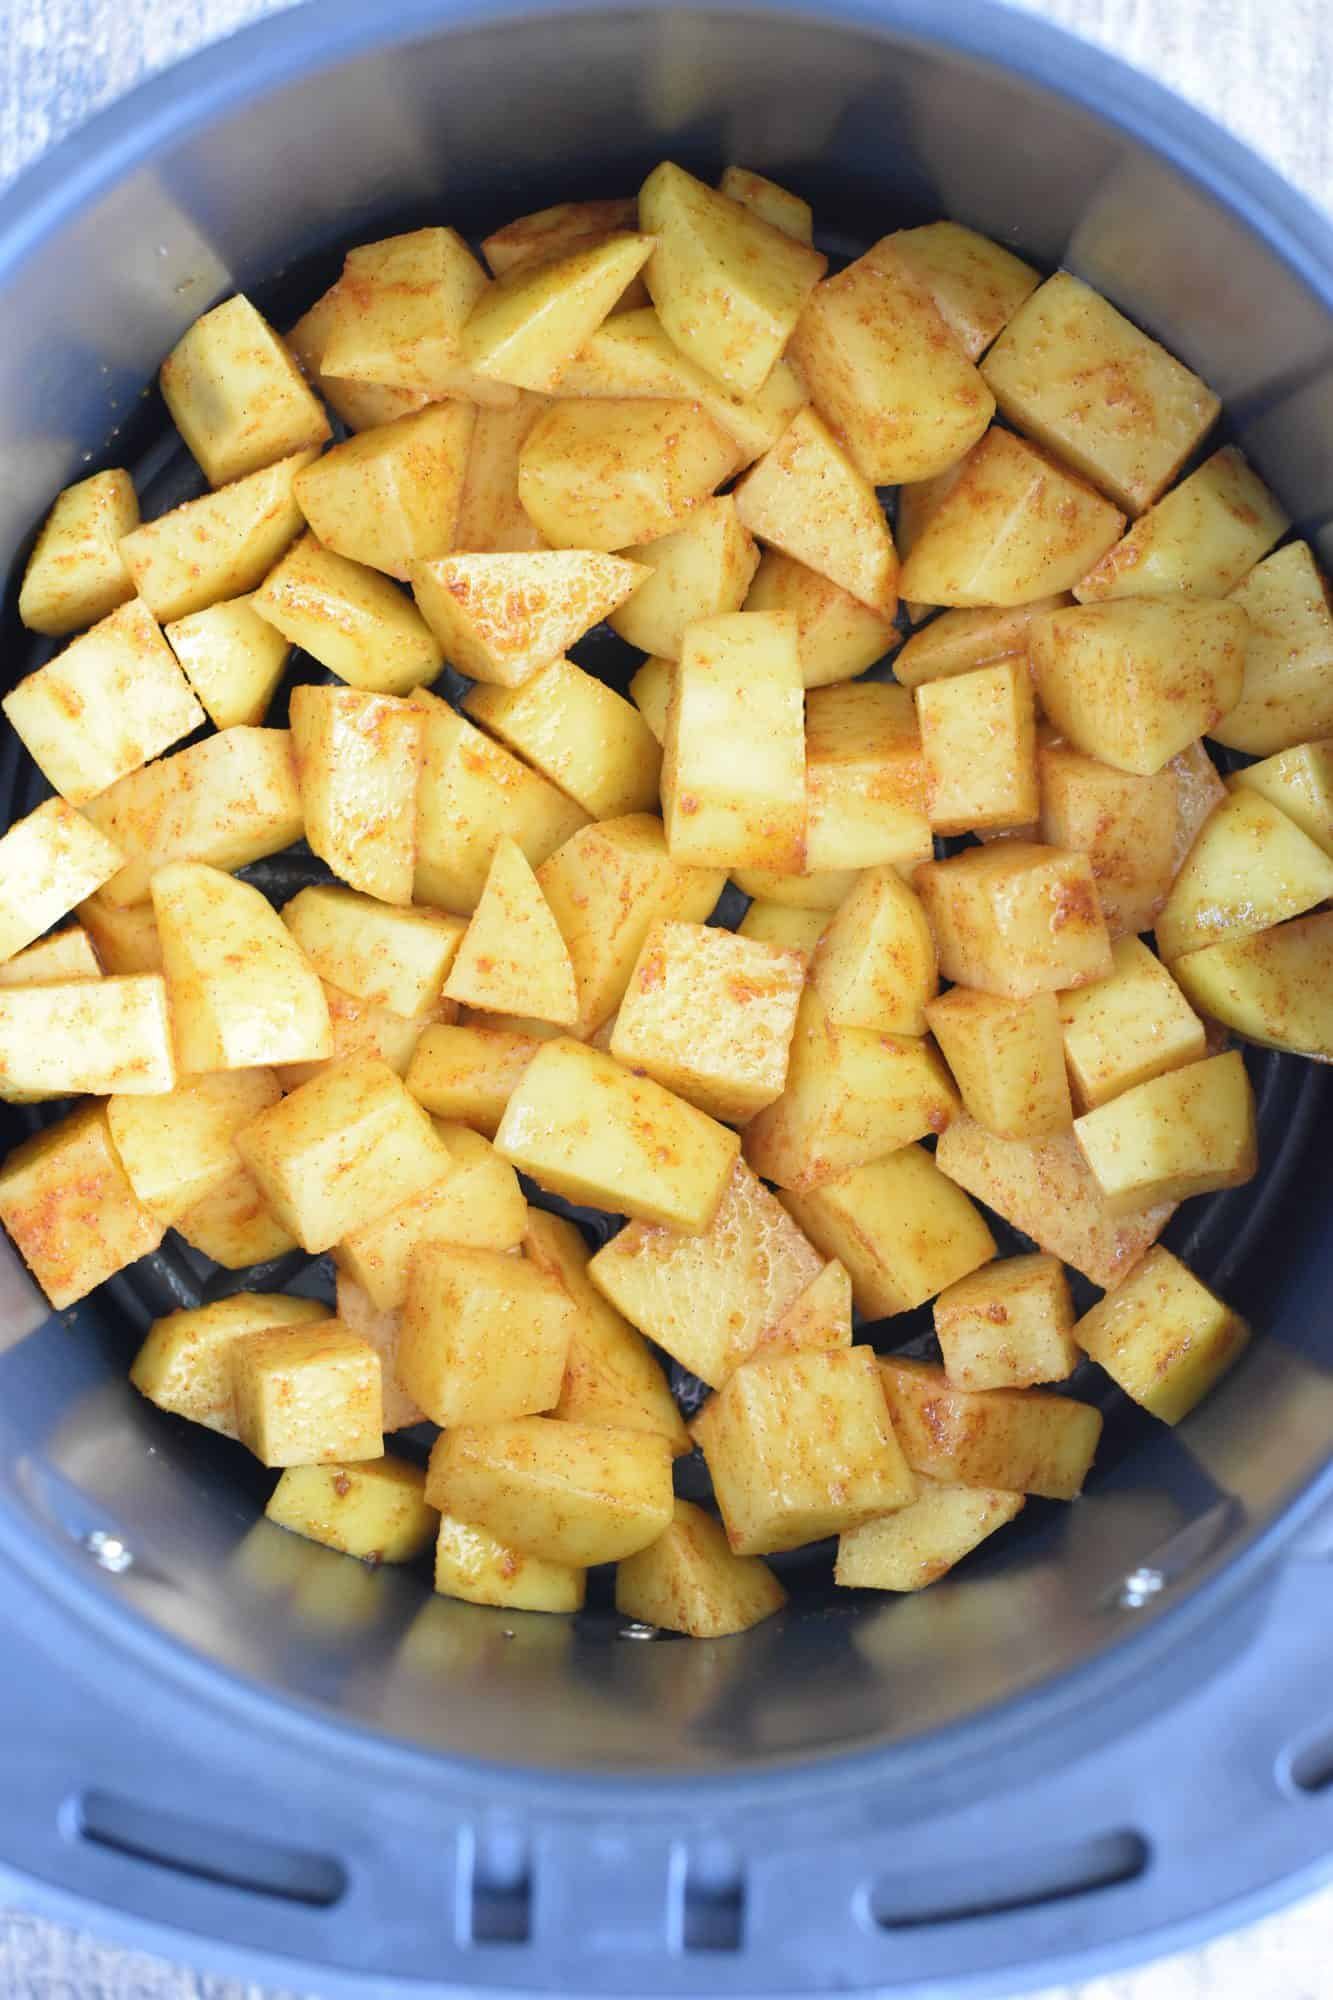 potatoes added to the air fryer before cooking